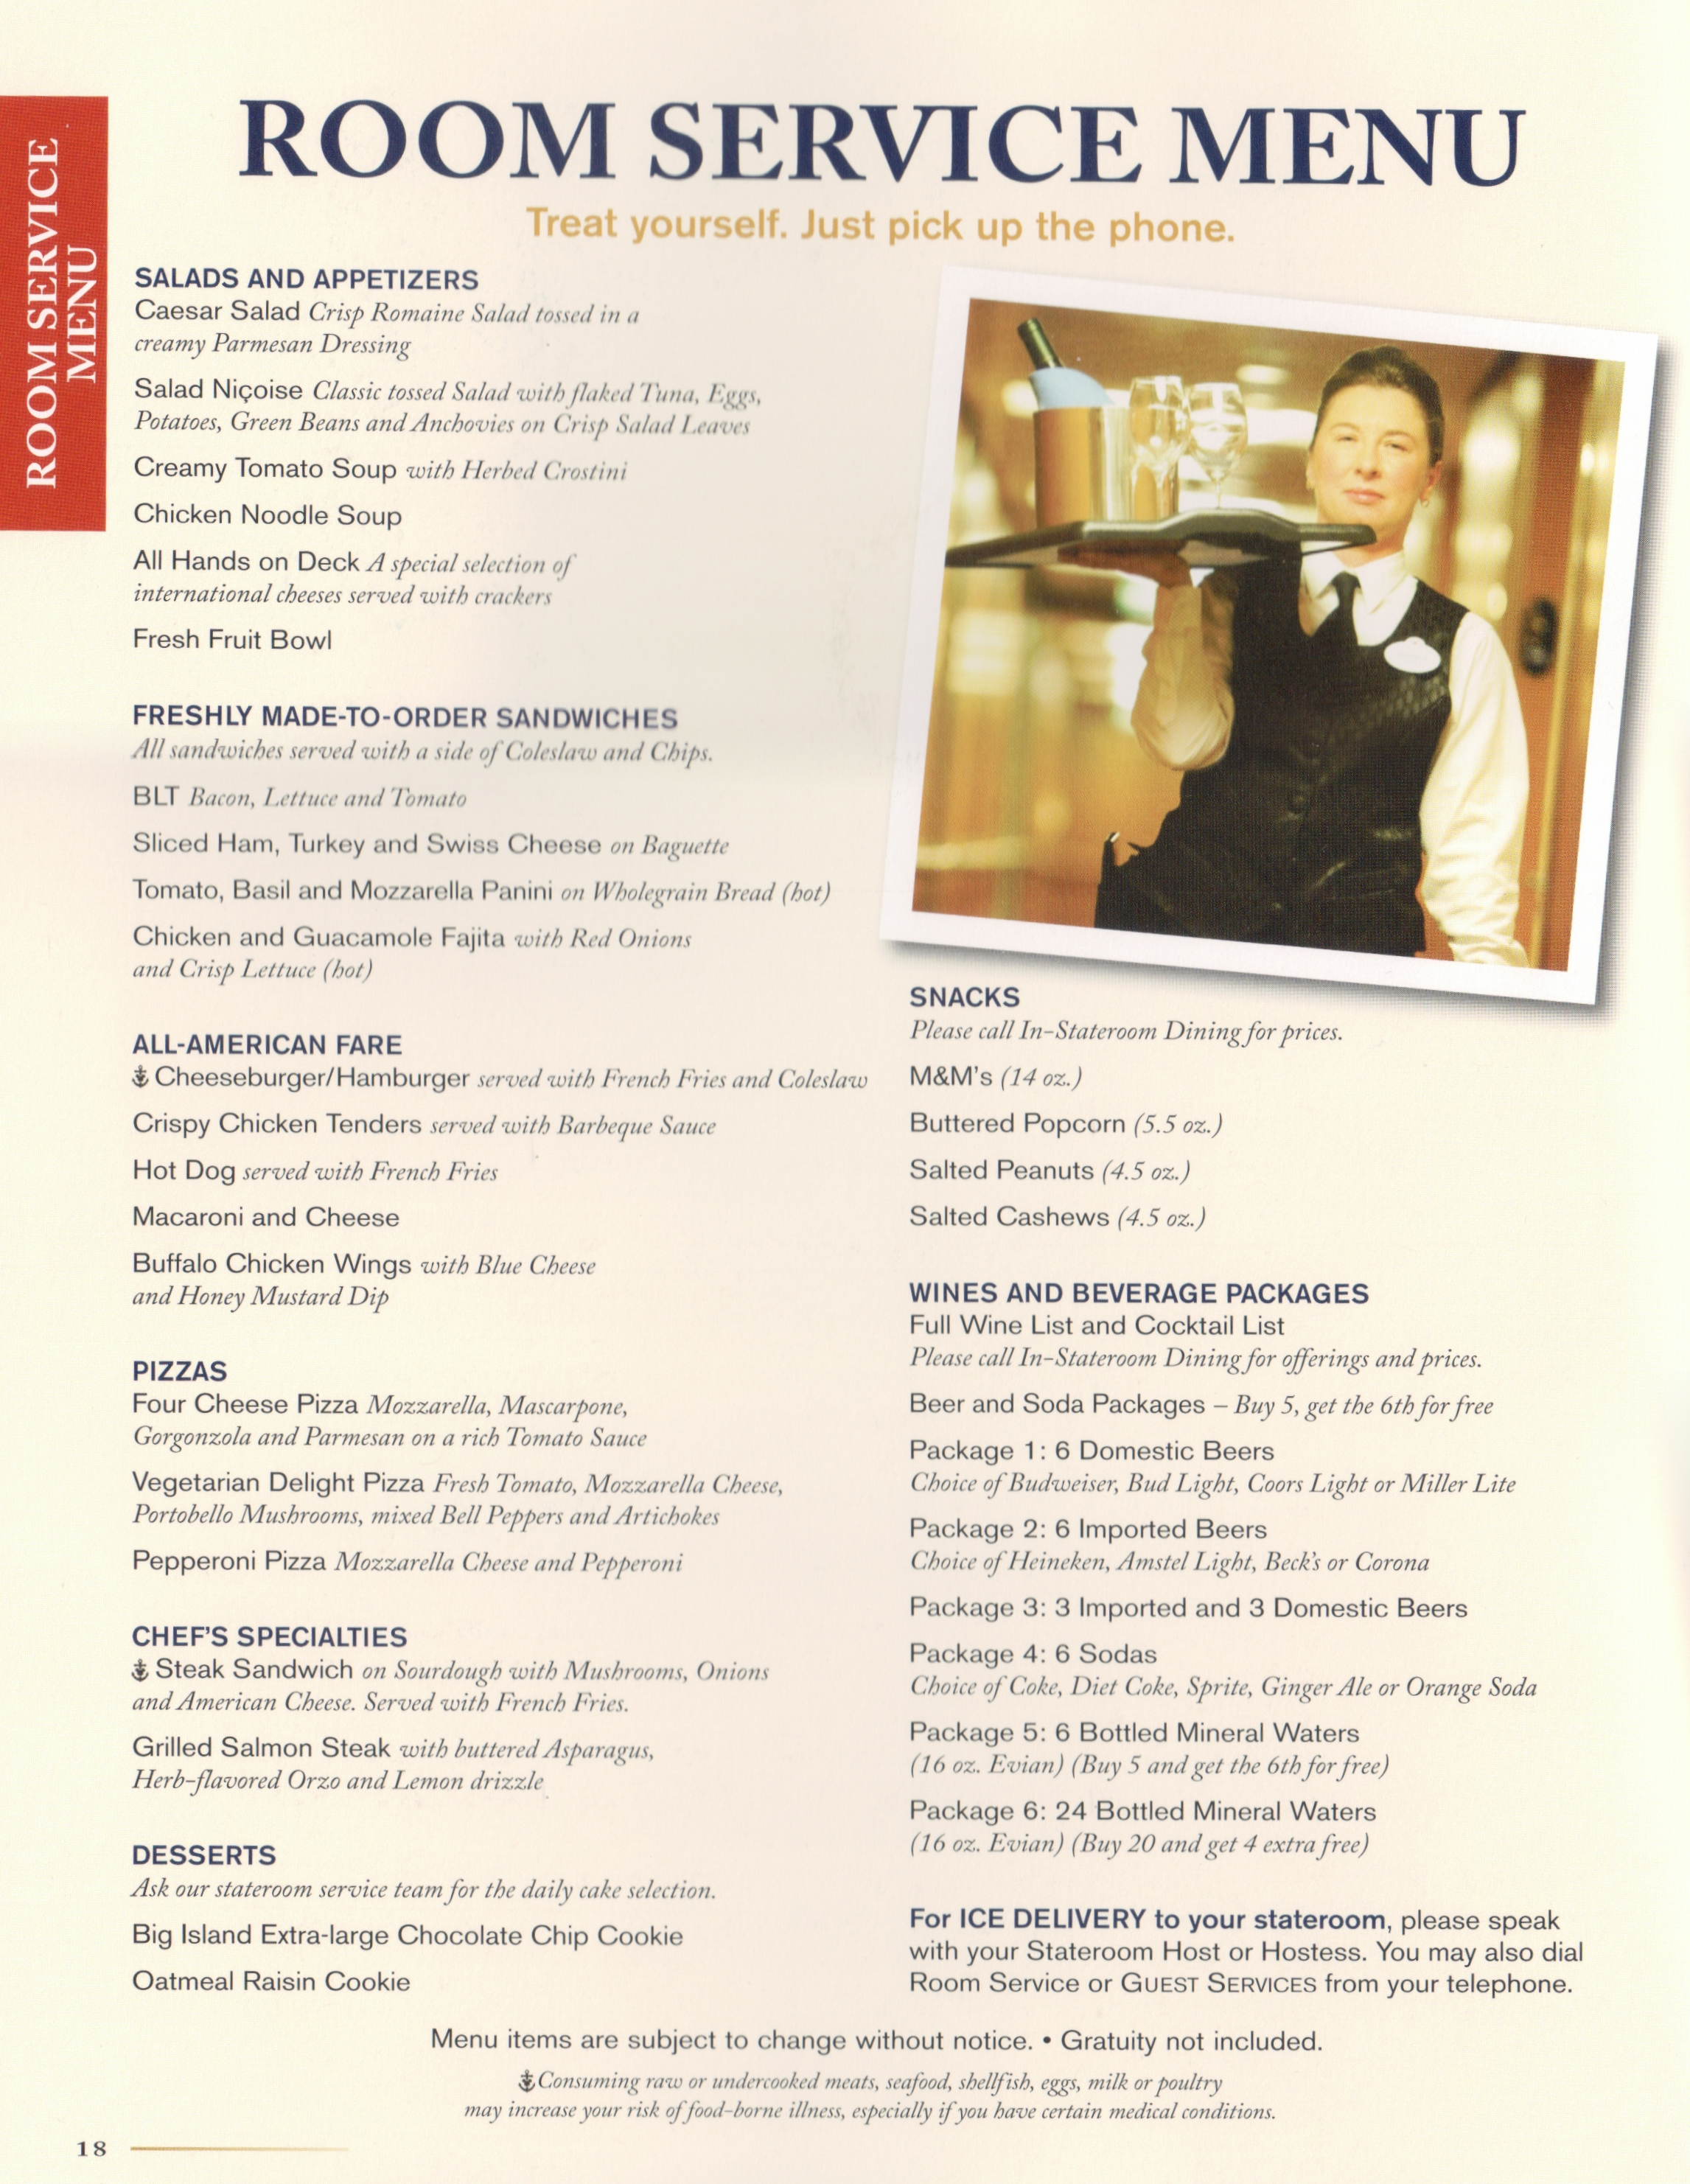 Disney Cruise Room Service Menu